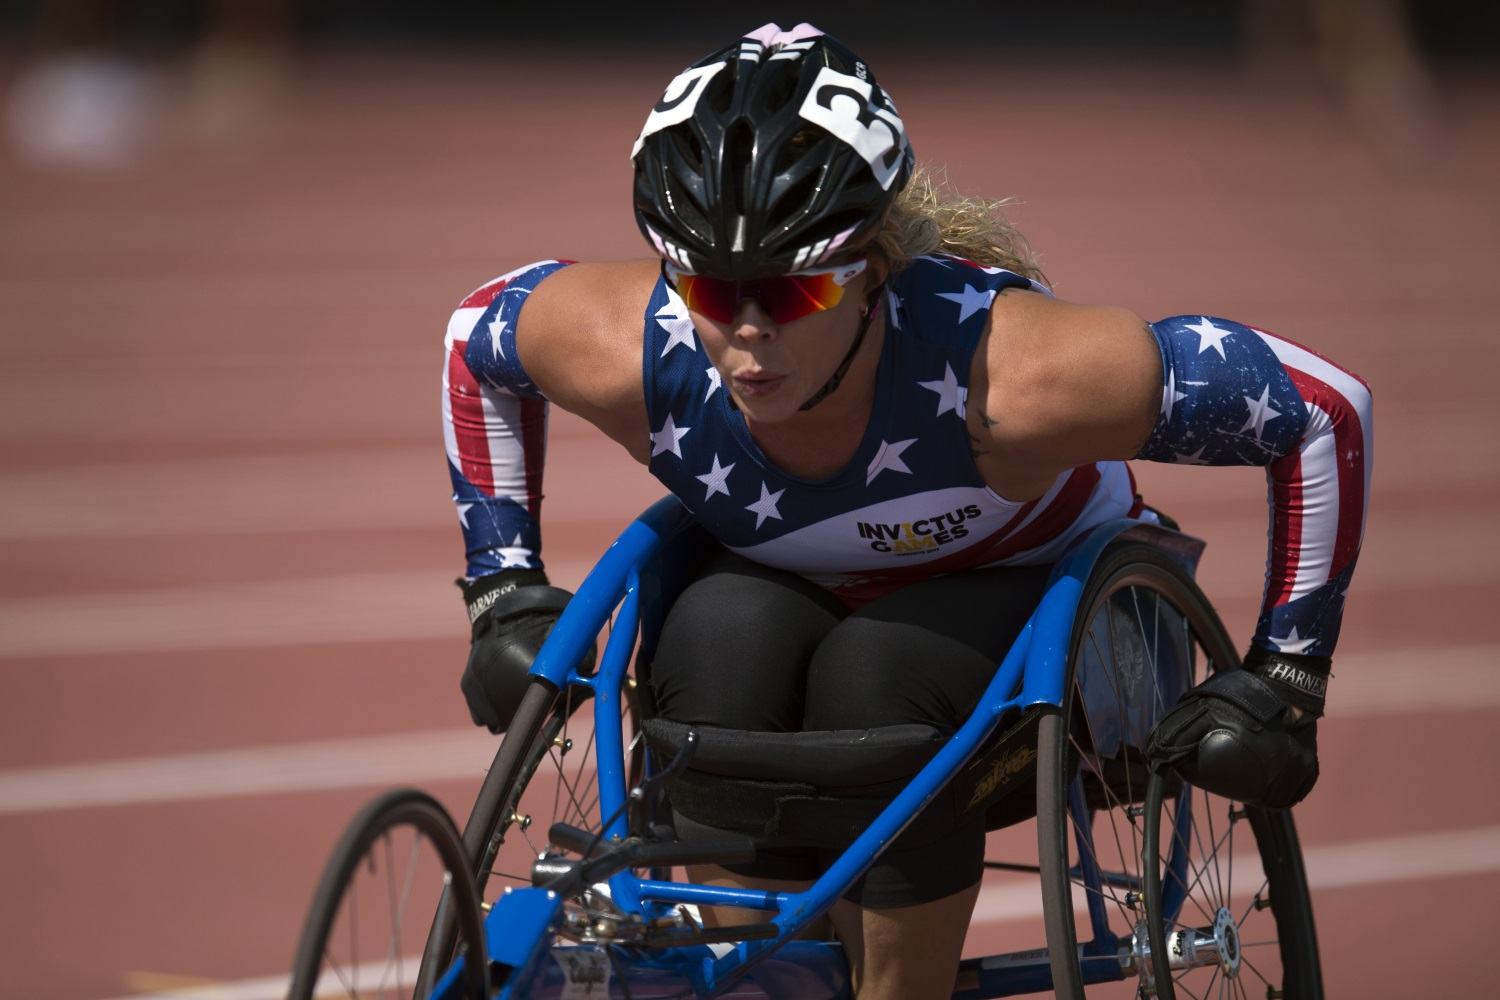 Retired Army Sgt. Brandi Evans races a wheelchair during the athletics finals of the 2017 Invictus Games in Toronto, Canada, on Sept. 25, 2017. (EJ Hersom/DoD)